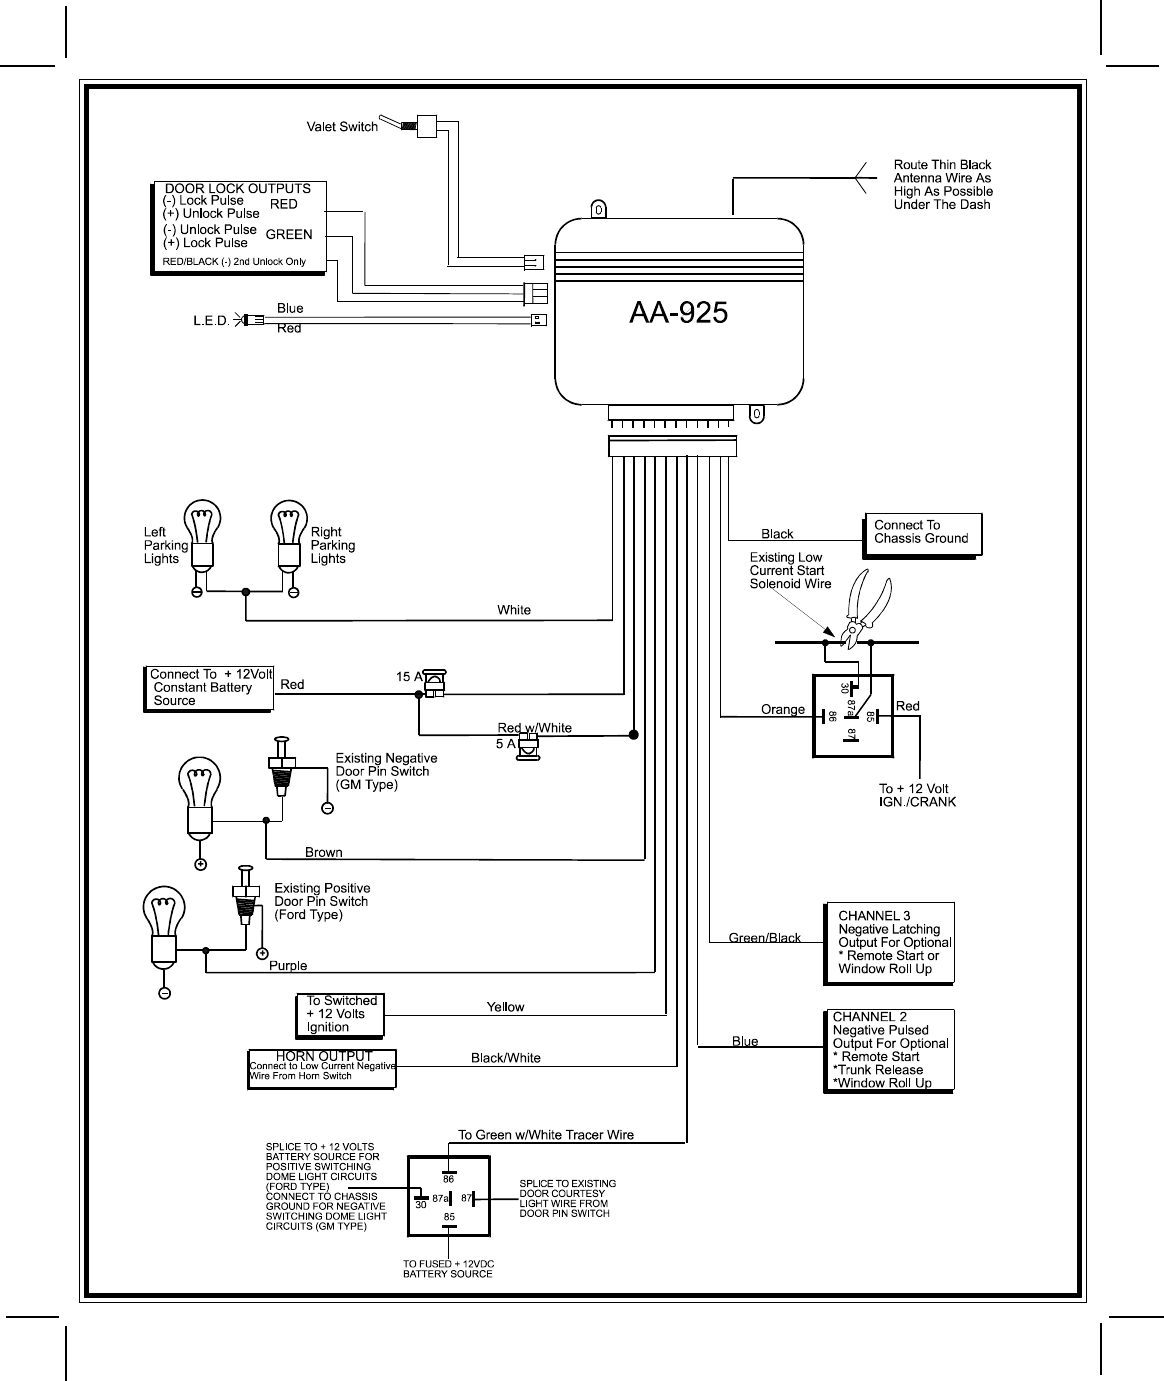 wiring diagrams enable technicians to printable sets of numbers diagram audiovox tech free engine image for user